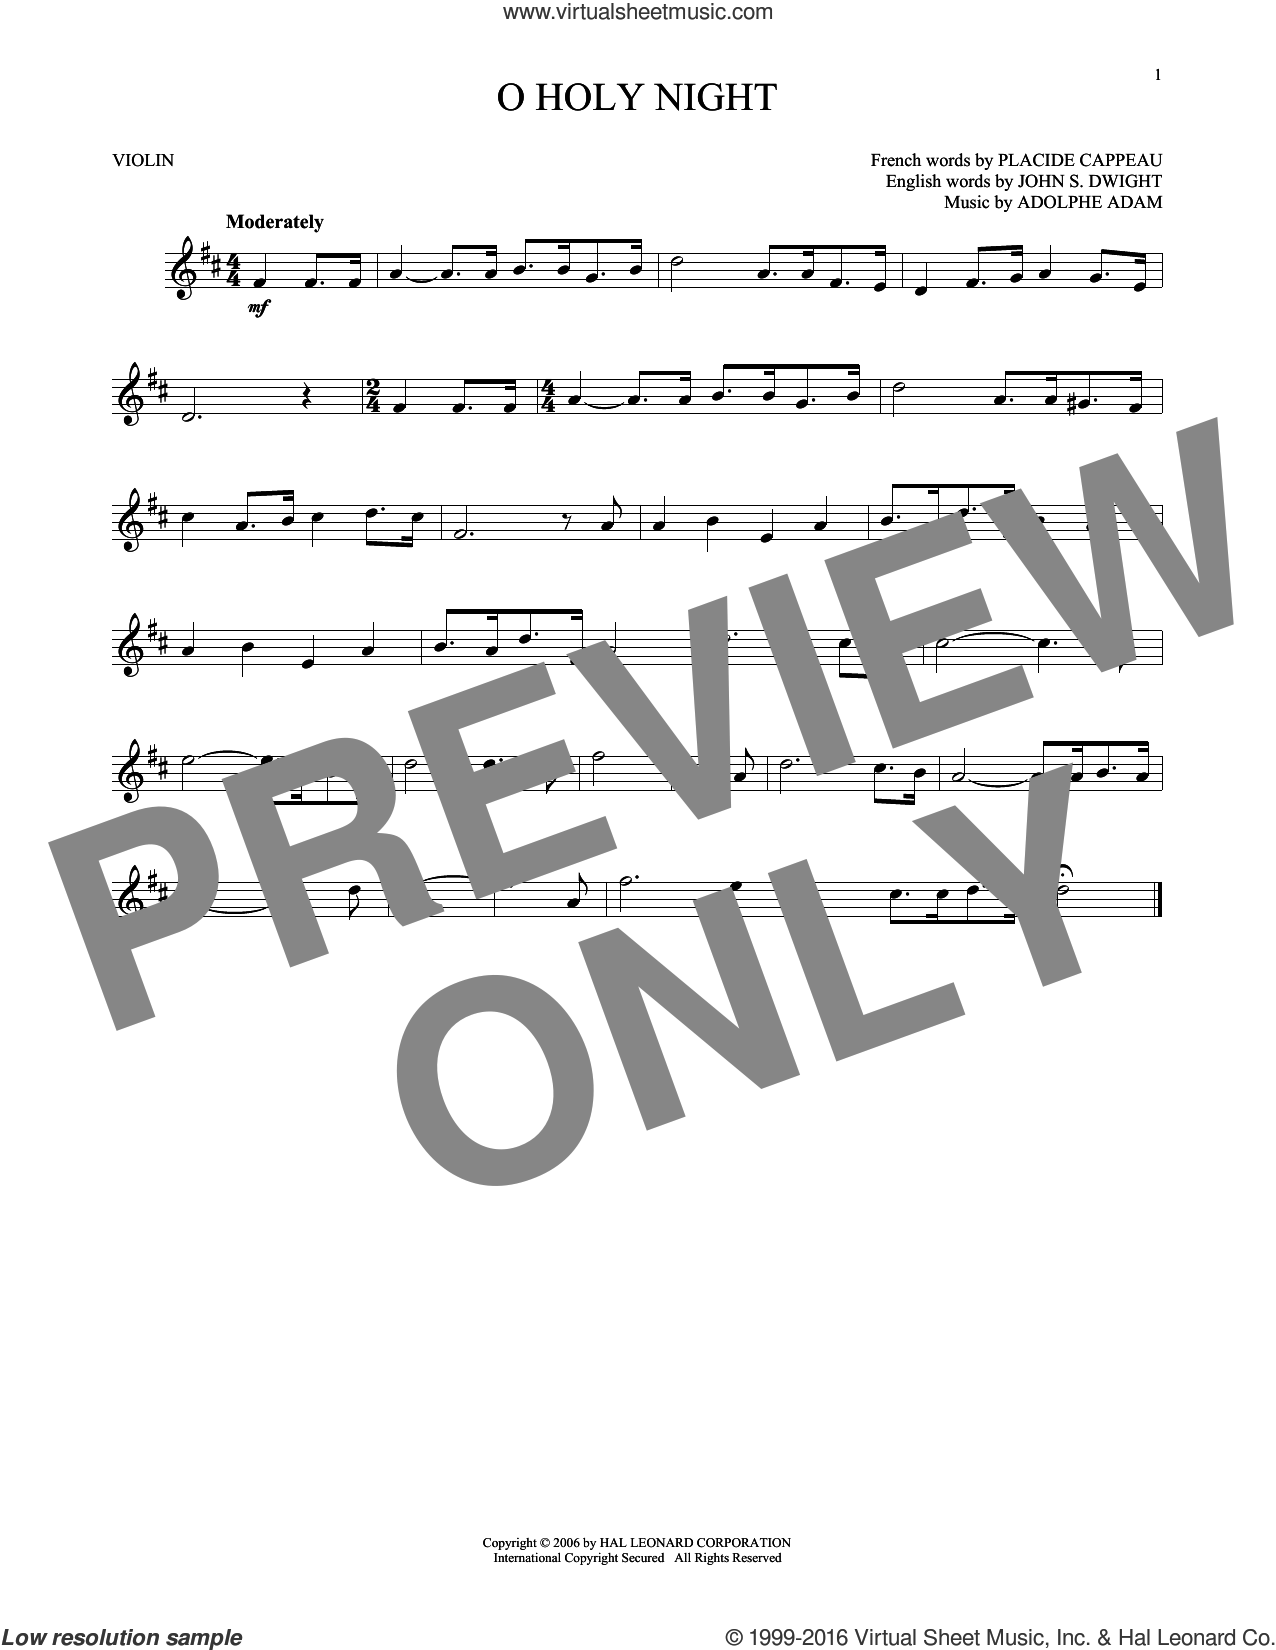 O Holy Night sheet music for violin solo by Adolphe Adam. Score Image Preview.